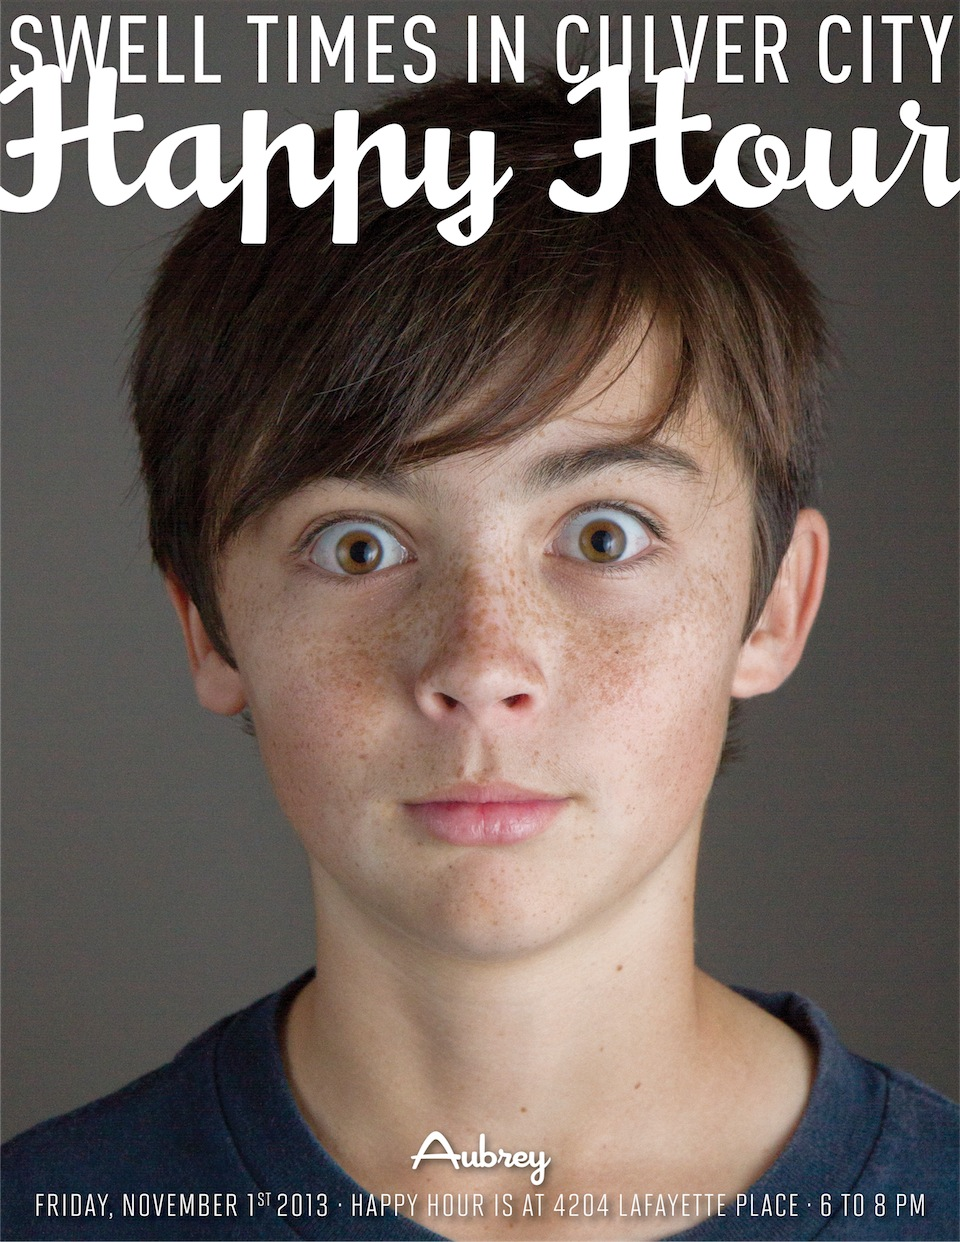 HappyHour_KidsPortraits_PartTwo_2013_10_31__23h126.jpeg